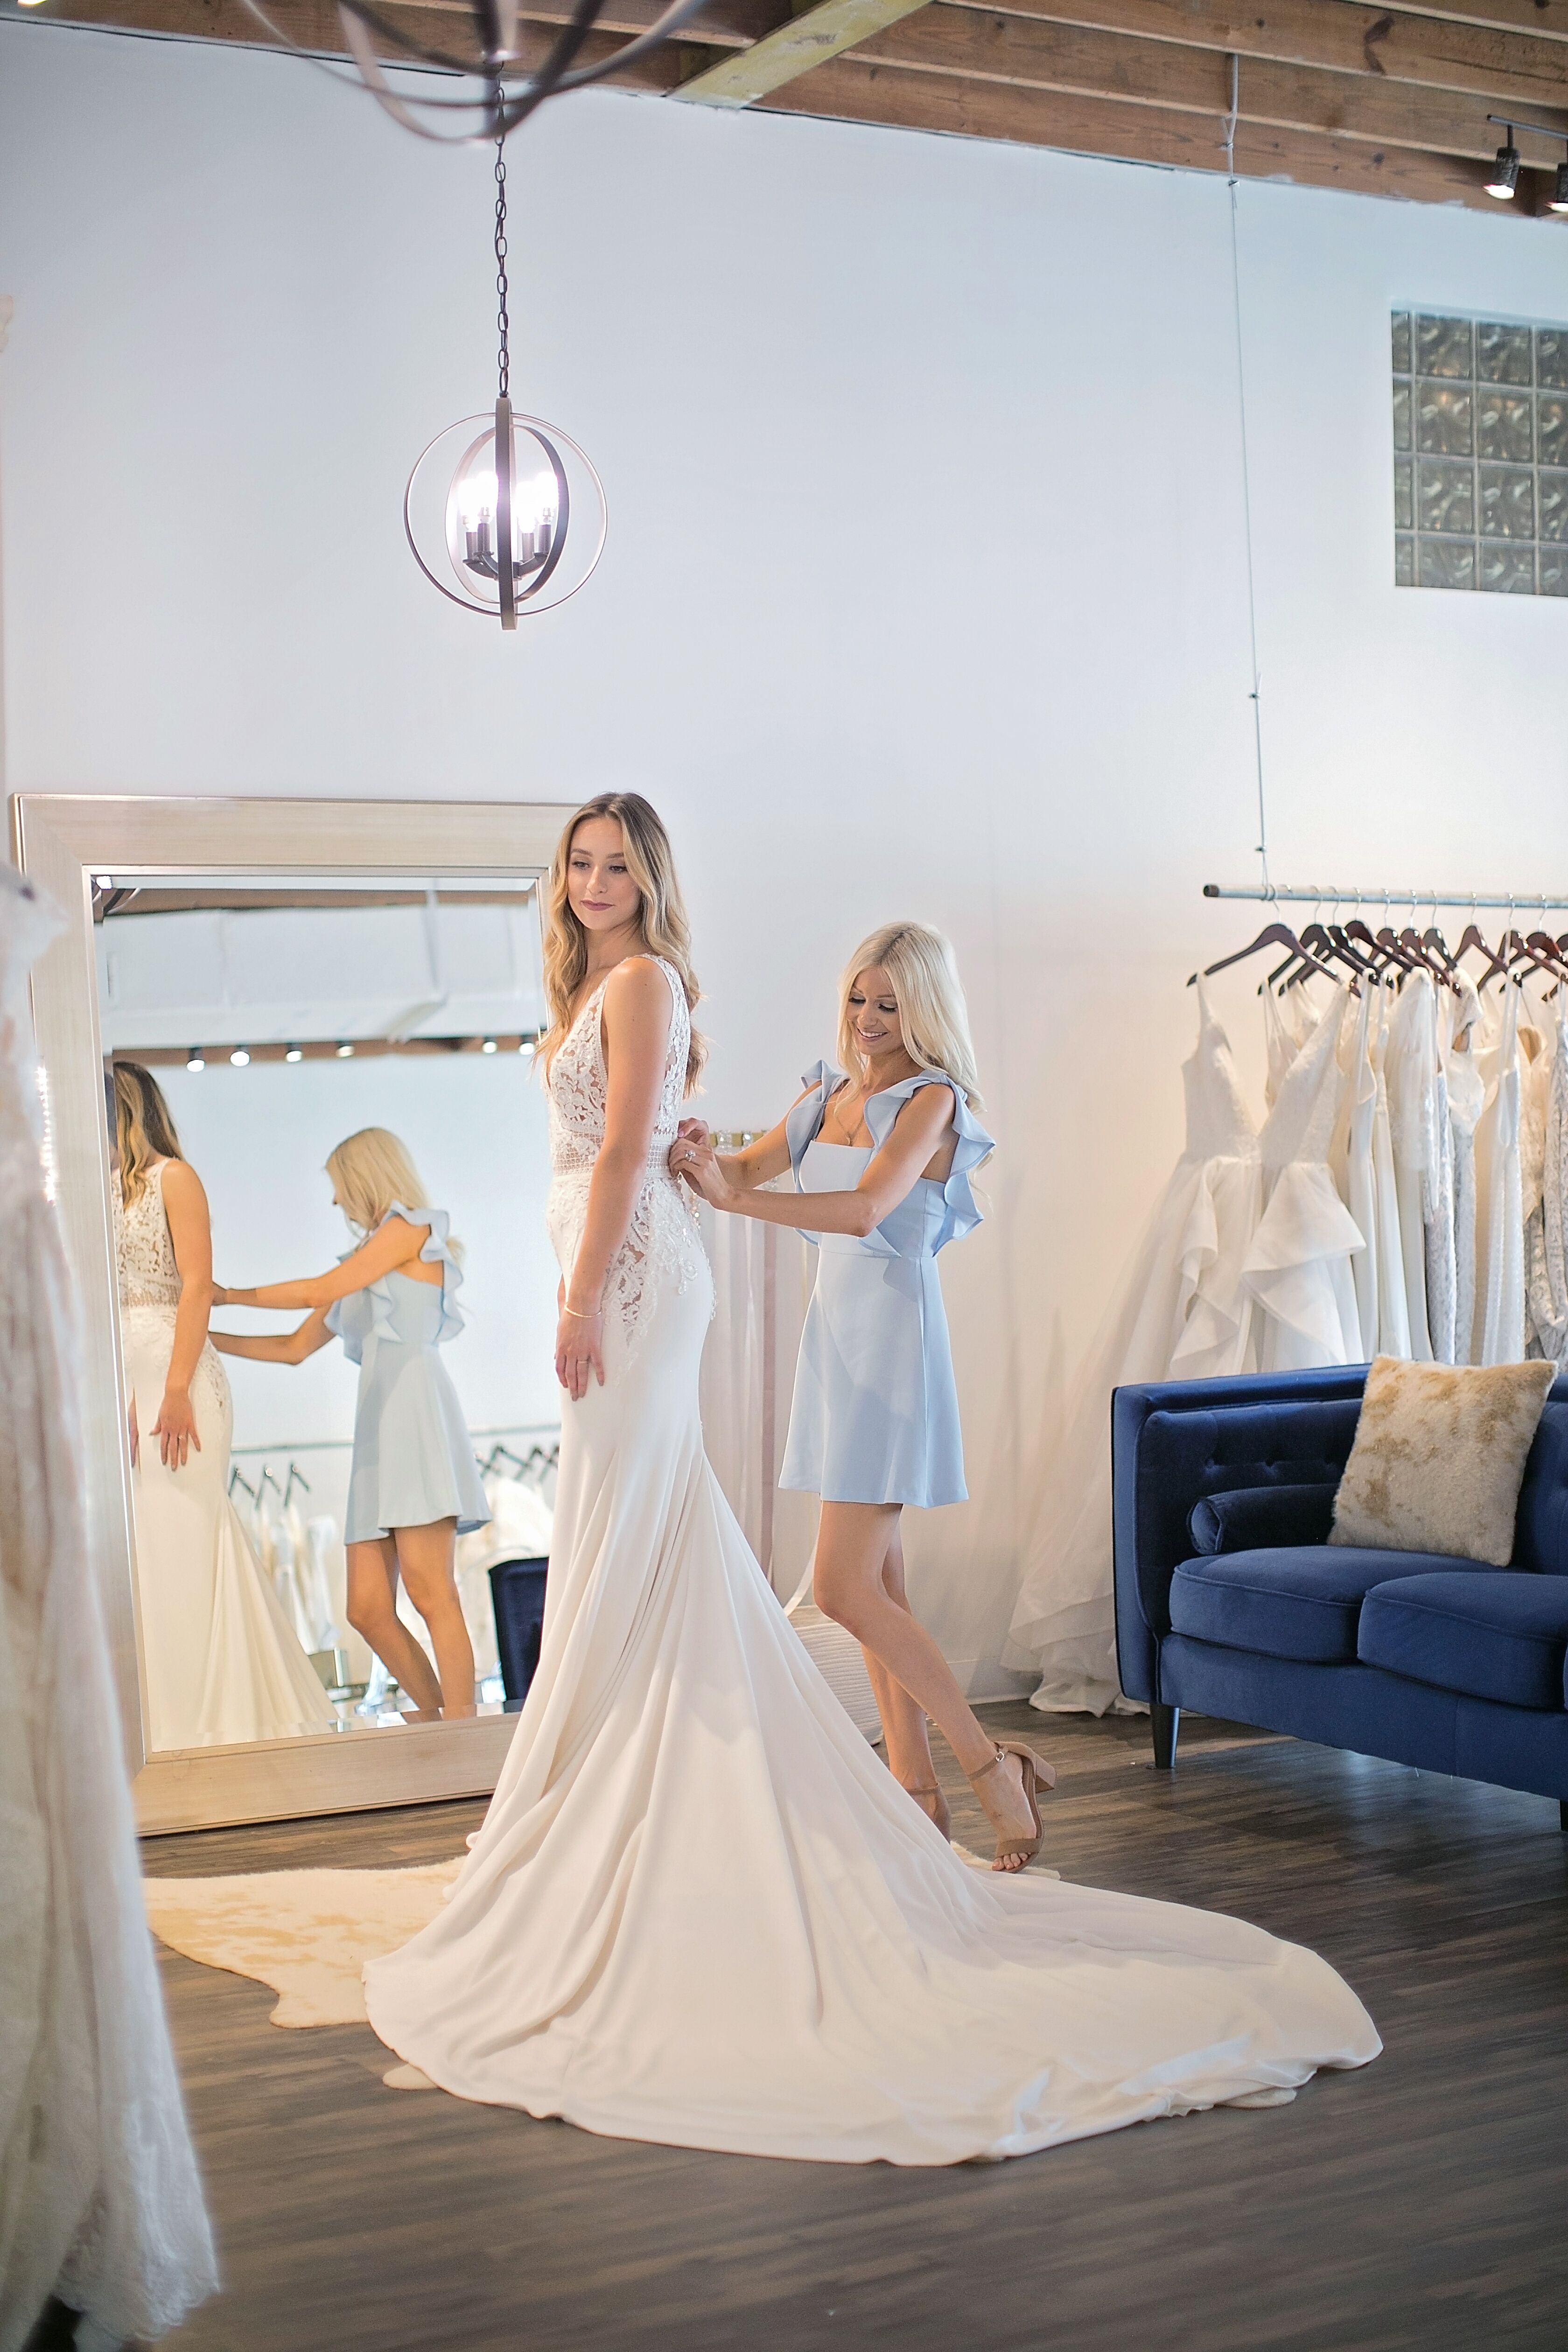 One Bridal   Bridal Salons   The Knot